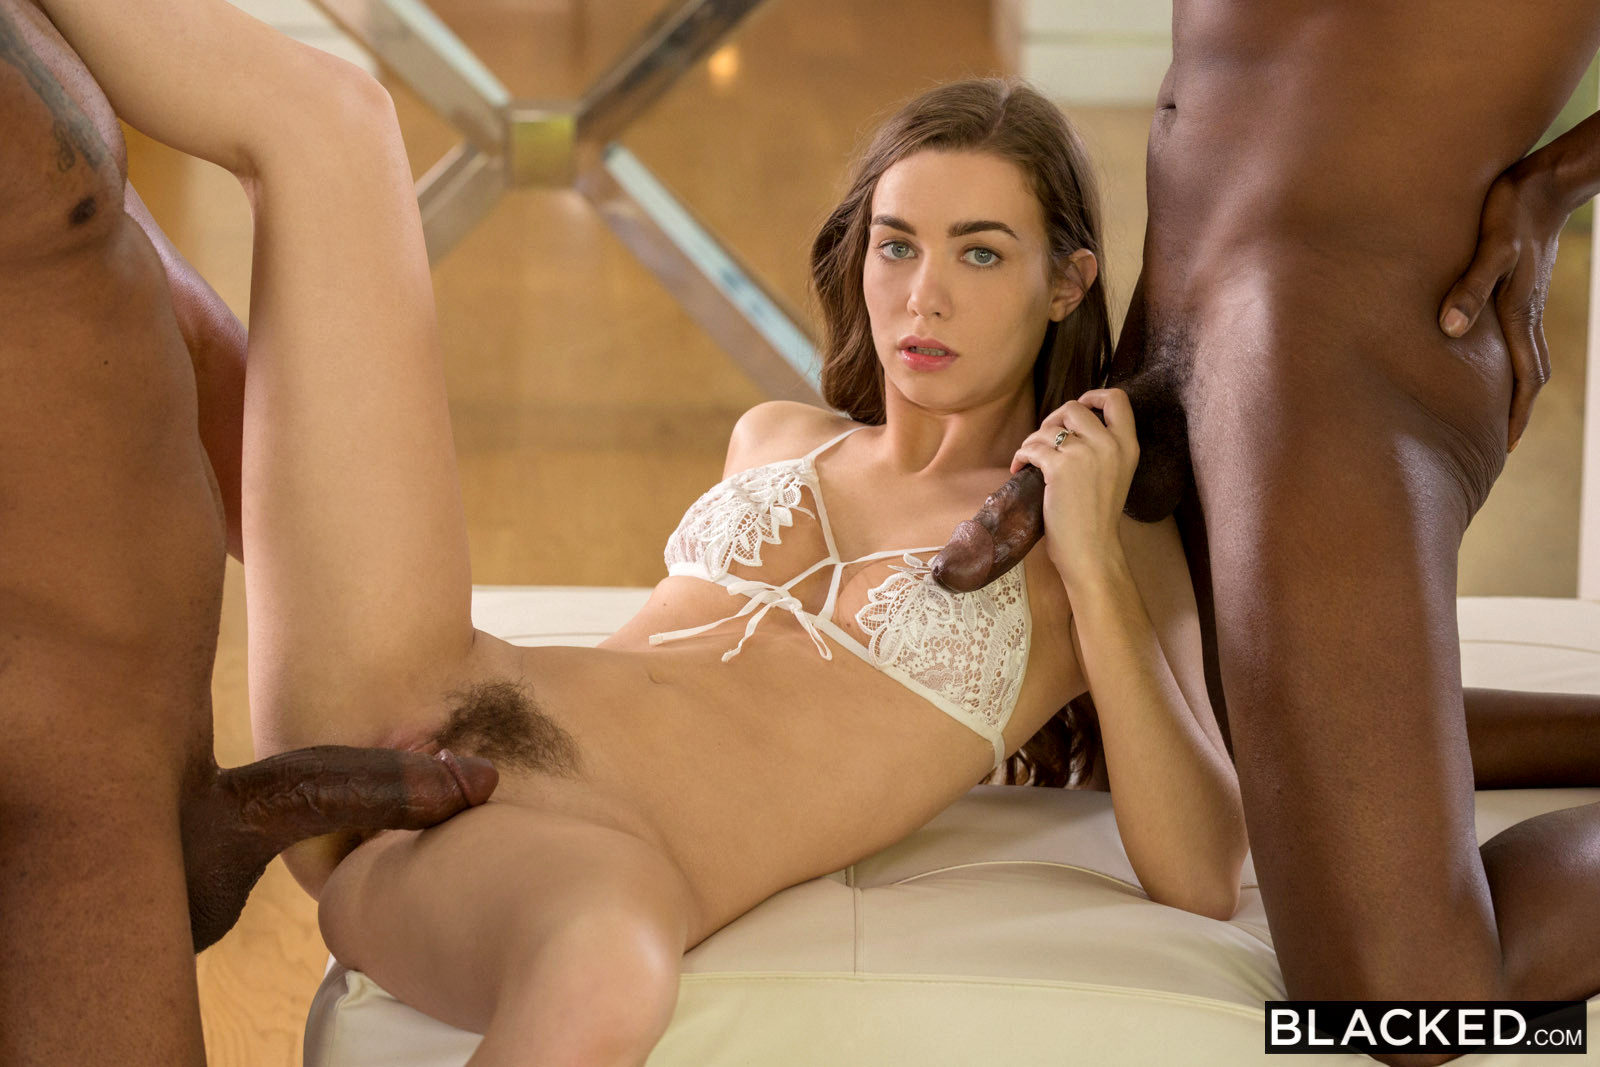 Babe Today Blacked Tali Dova Hidden Interracial Porno Xxx -9618